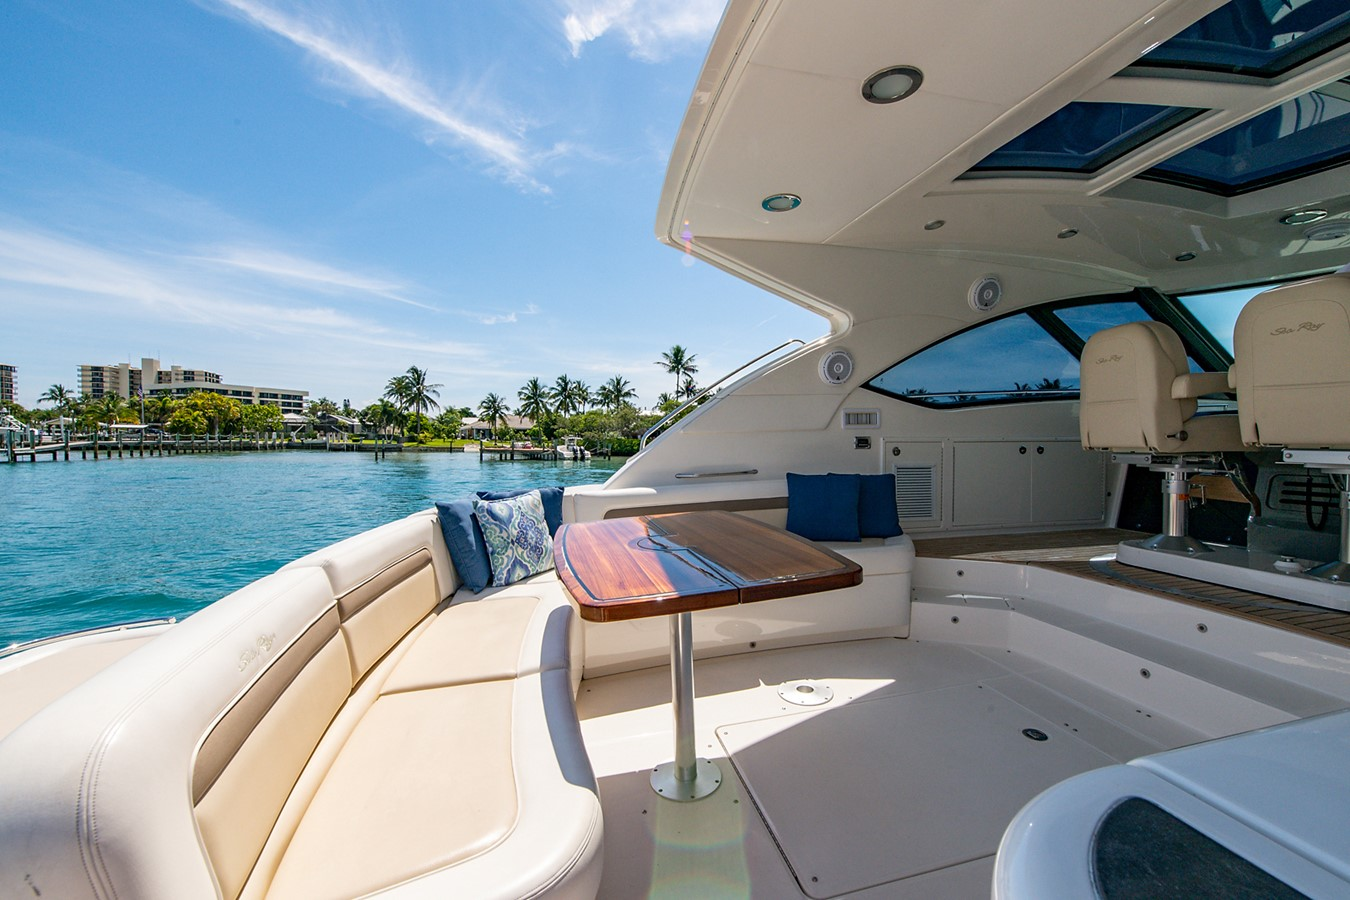 2013 SEA RAY Sundancer Motor Yacht 2531140